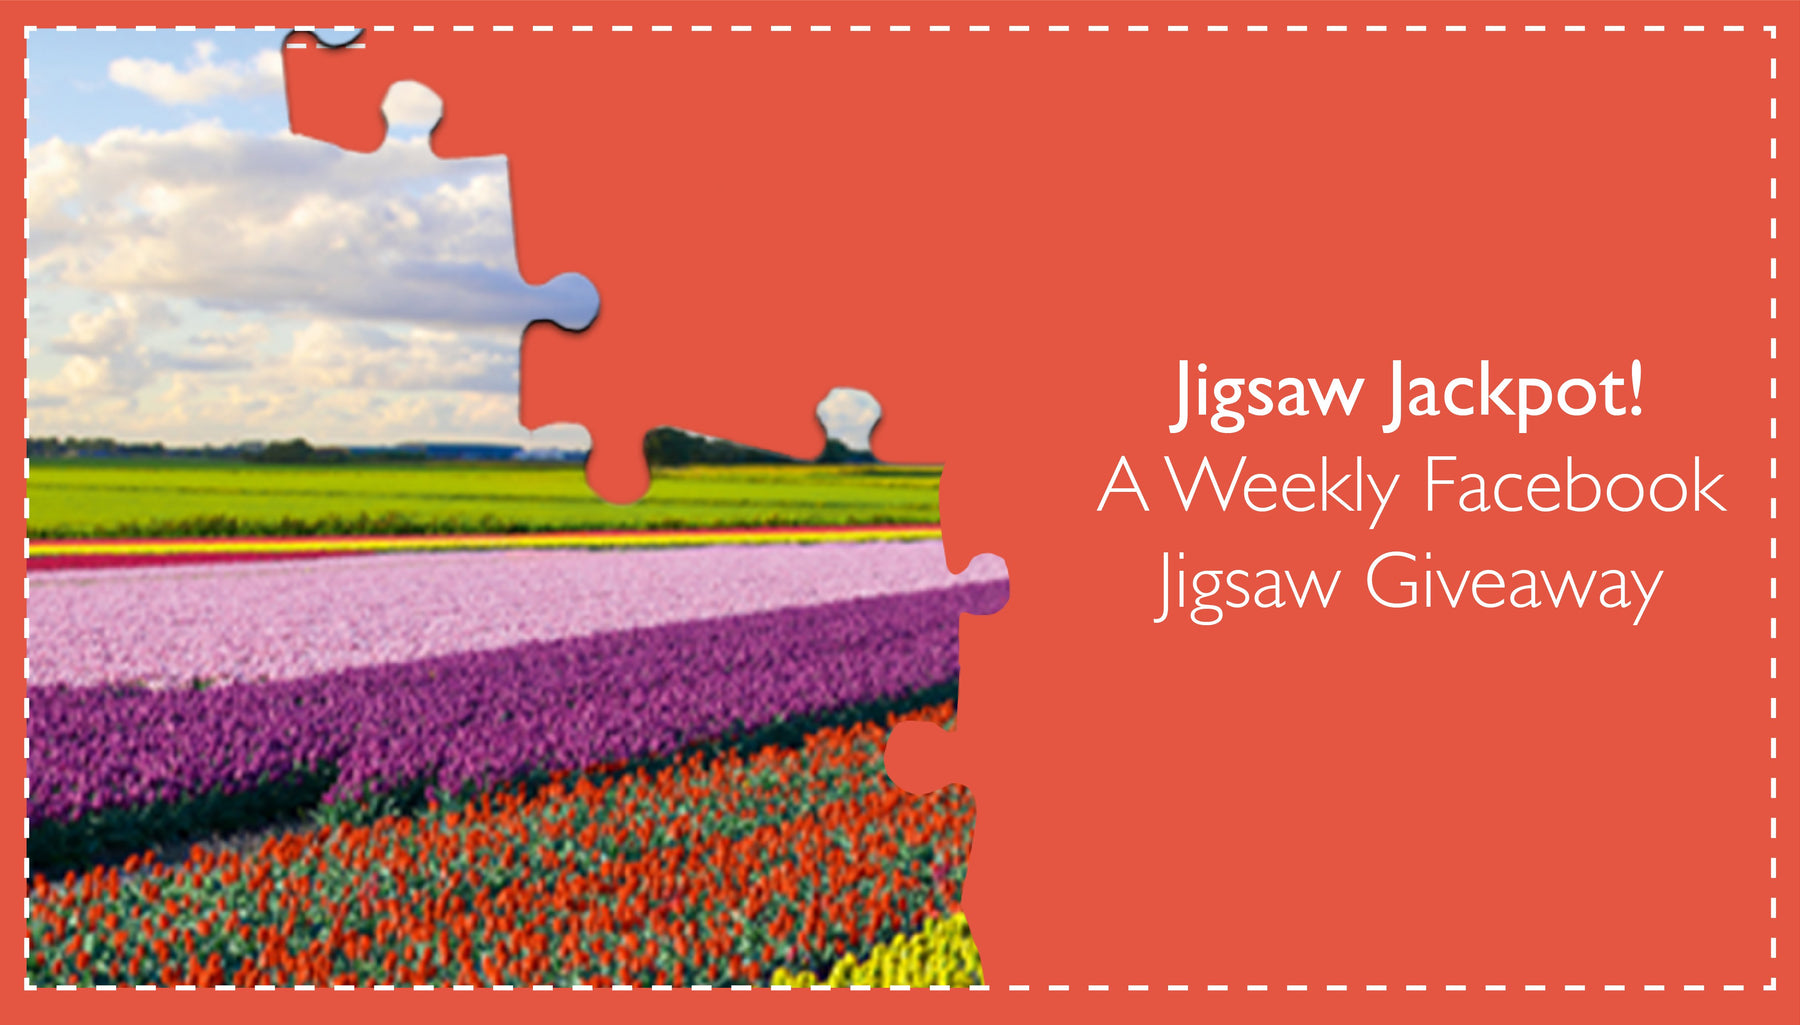 Jigsaw Jackpot! A Weekly Facebook Jigsaw Giveaway